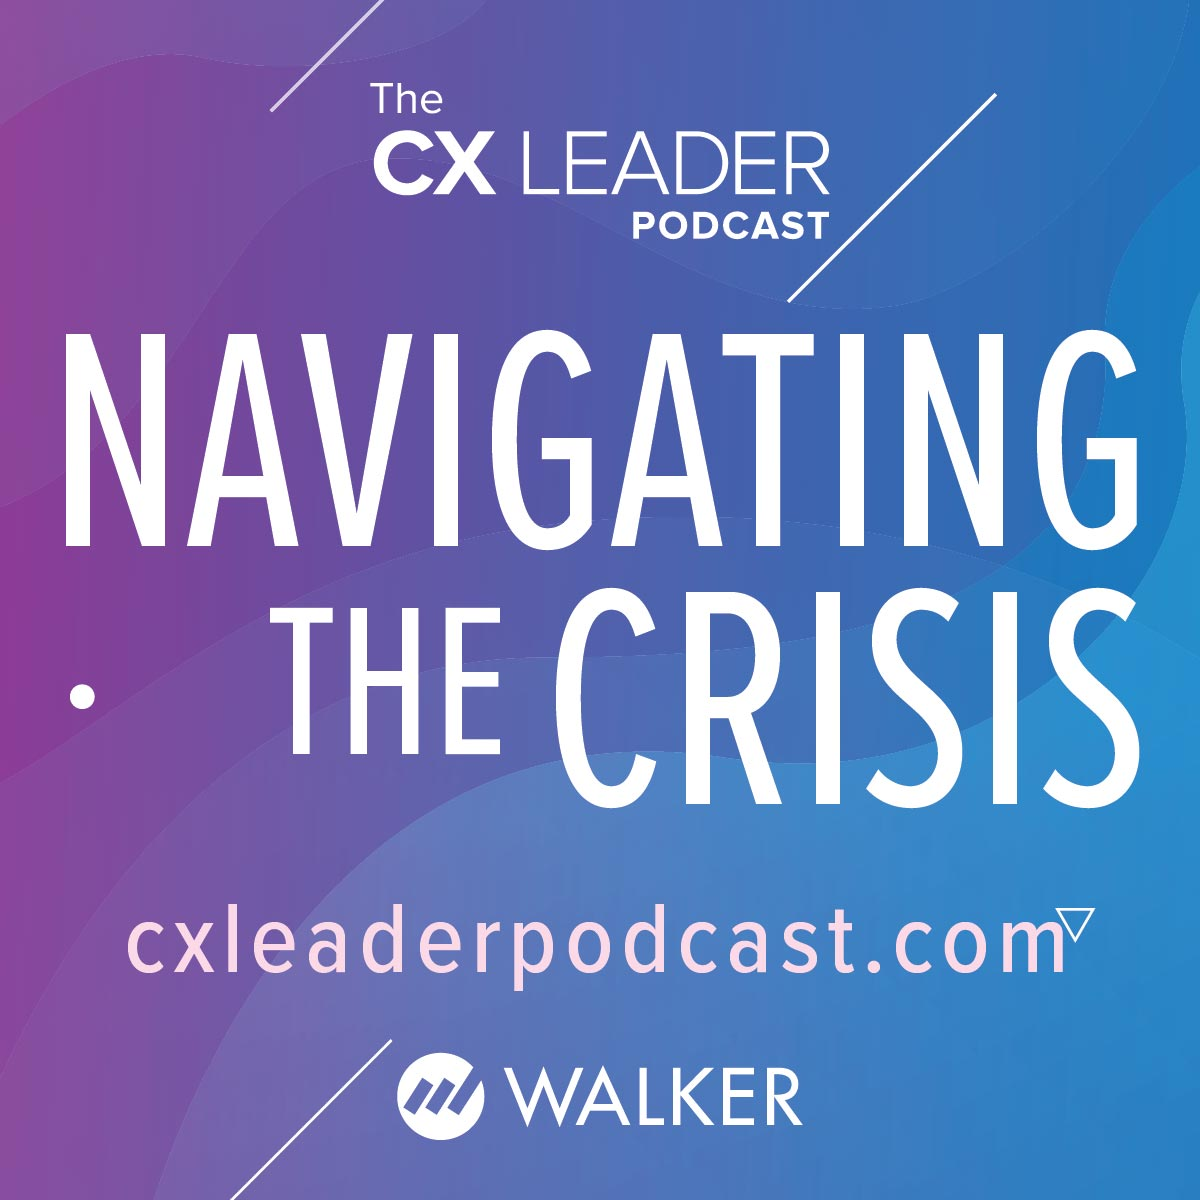 Navigating the Crisis